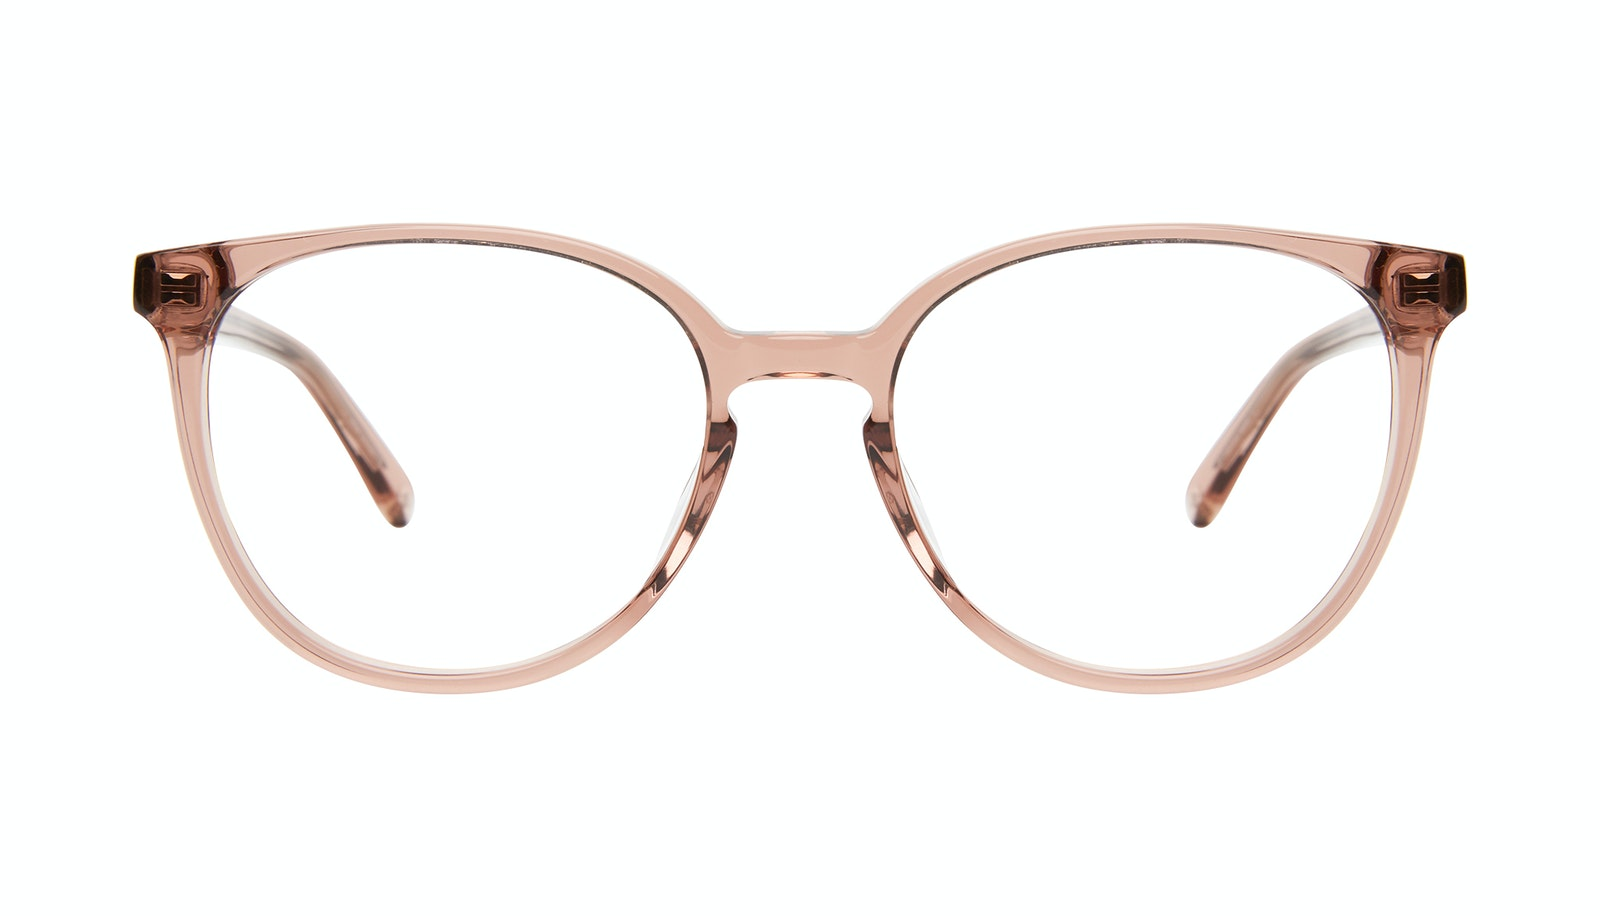 Affordable Fashion Glasses Round Eyeglasses Women Impression Rose